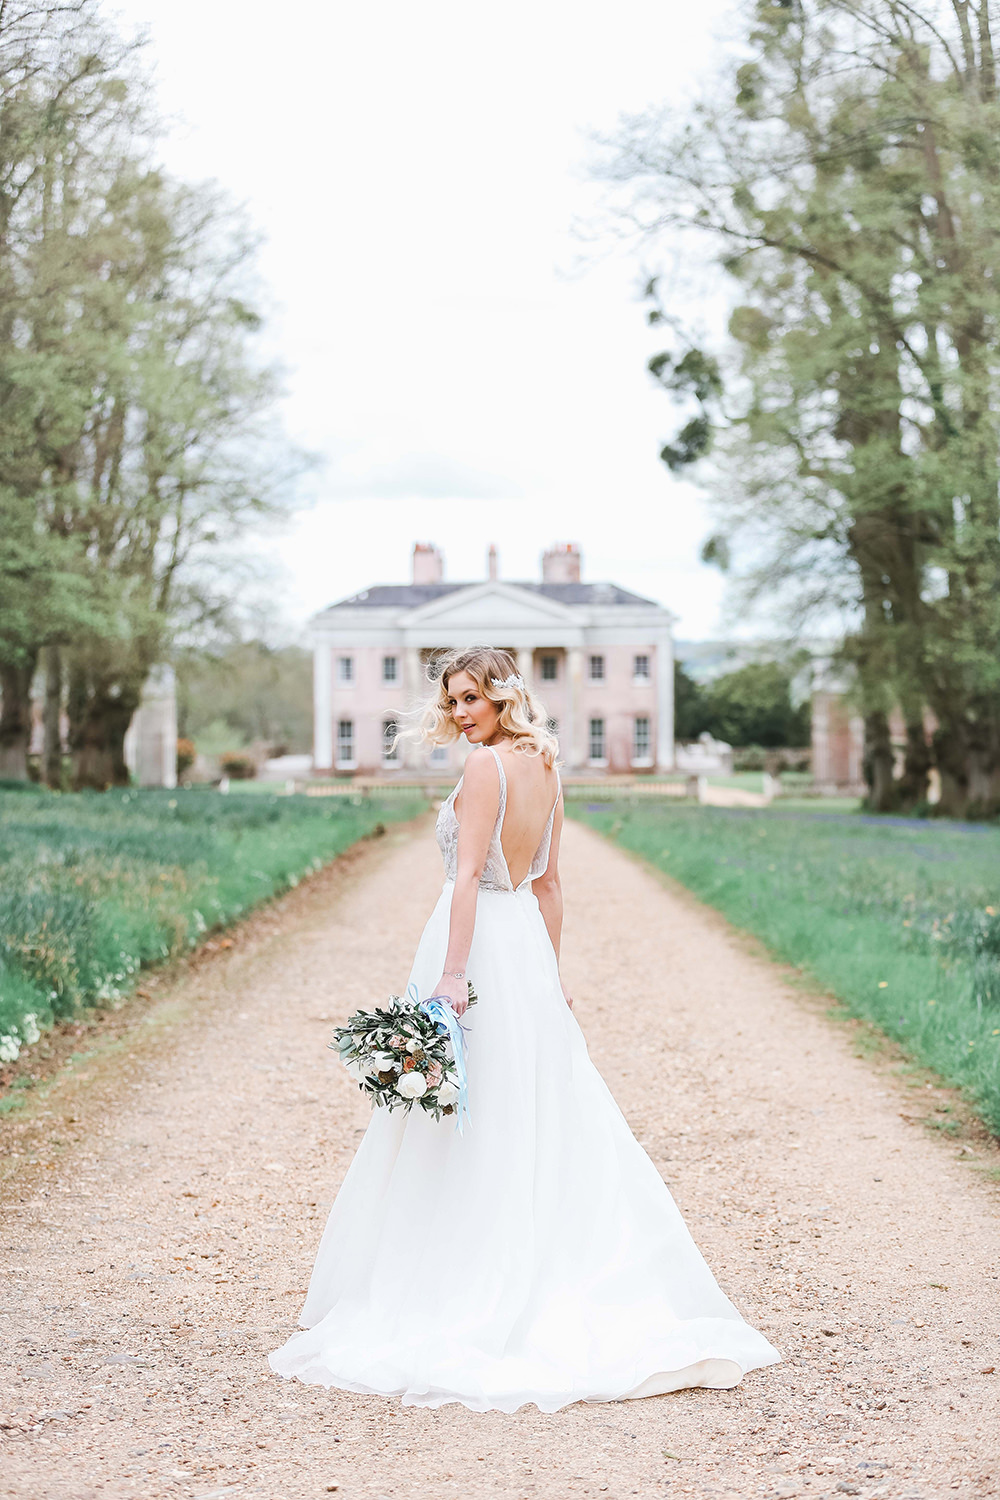 Effortless French Chic At Hale Park Hampshire By Charlotte Wise